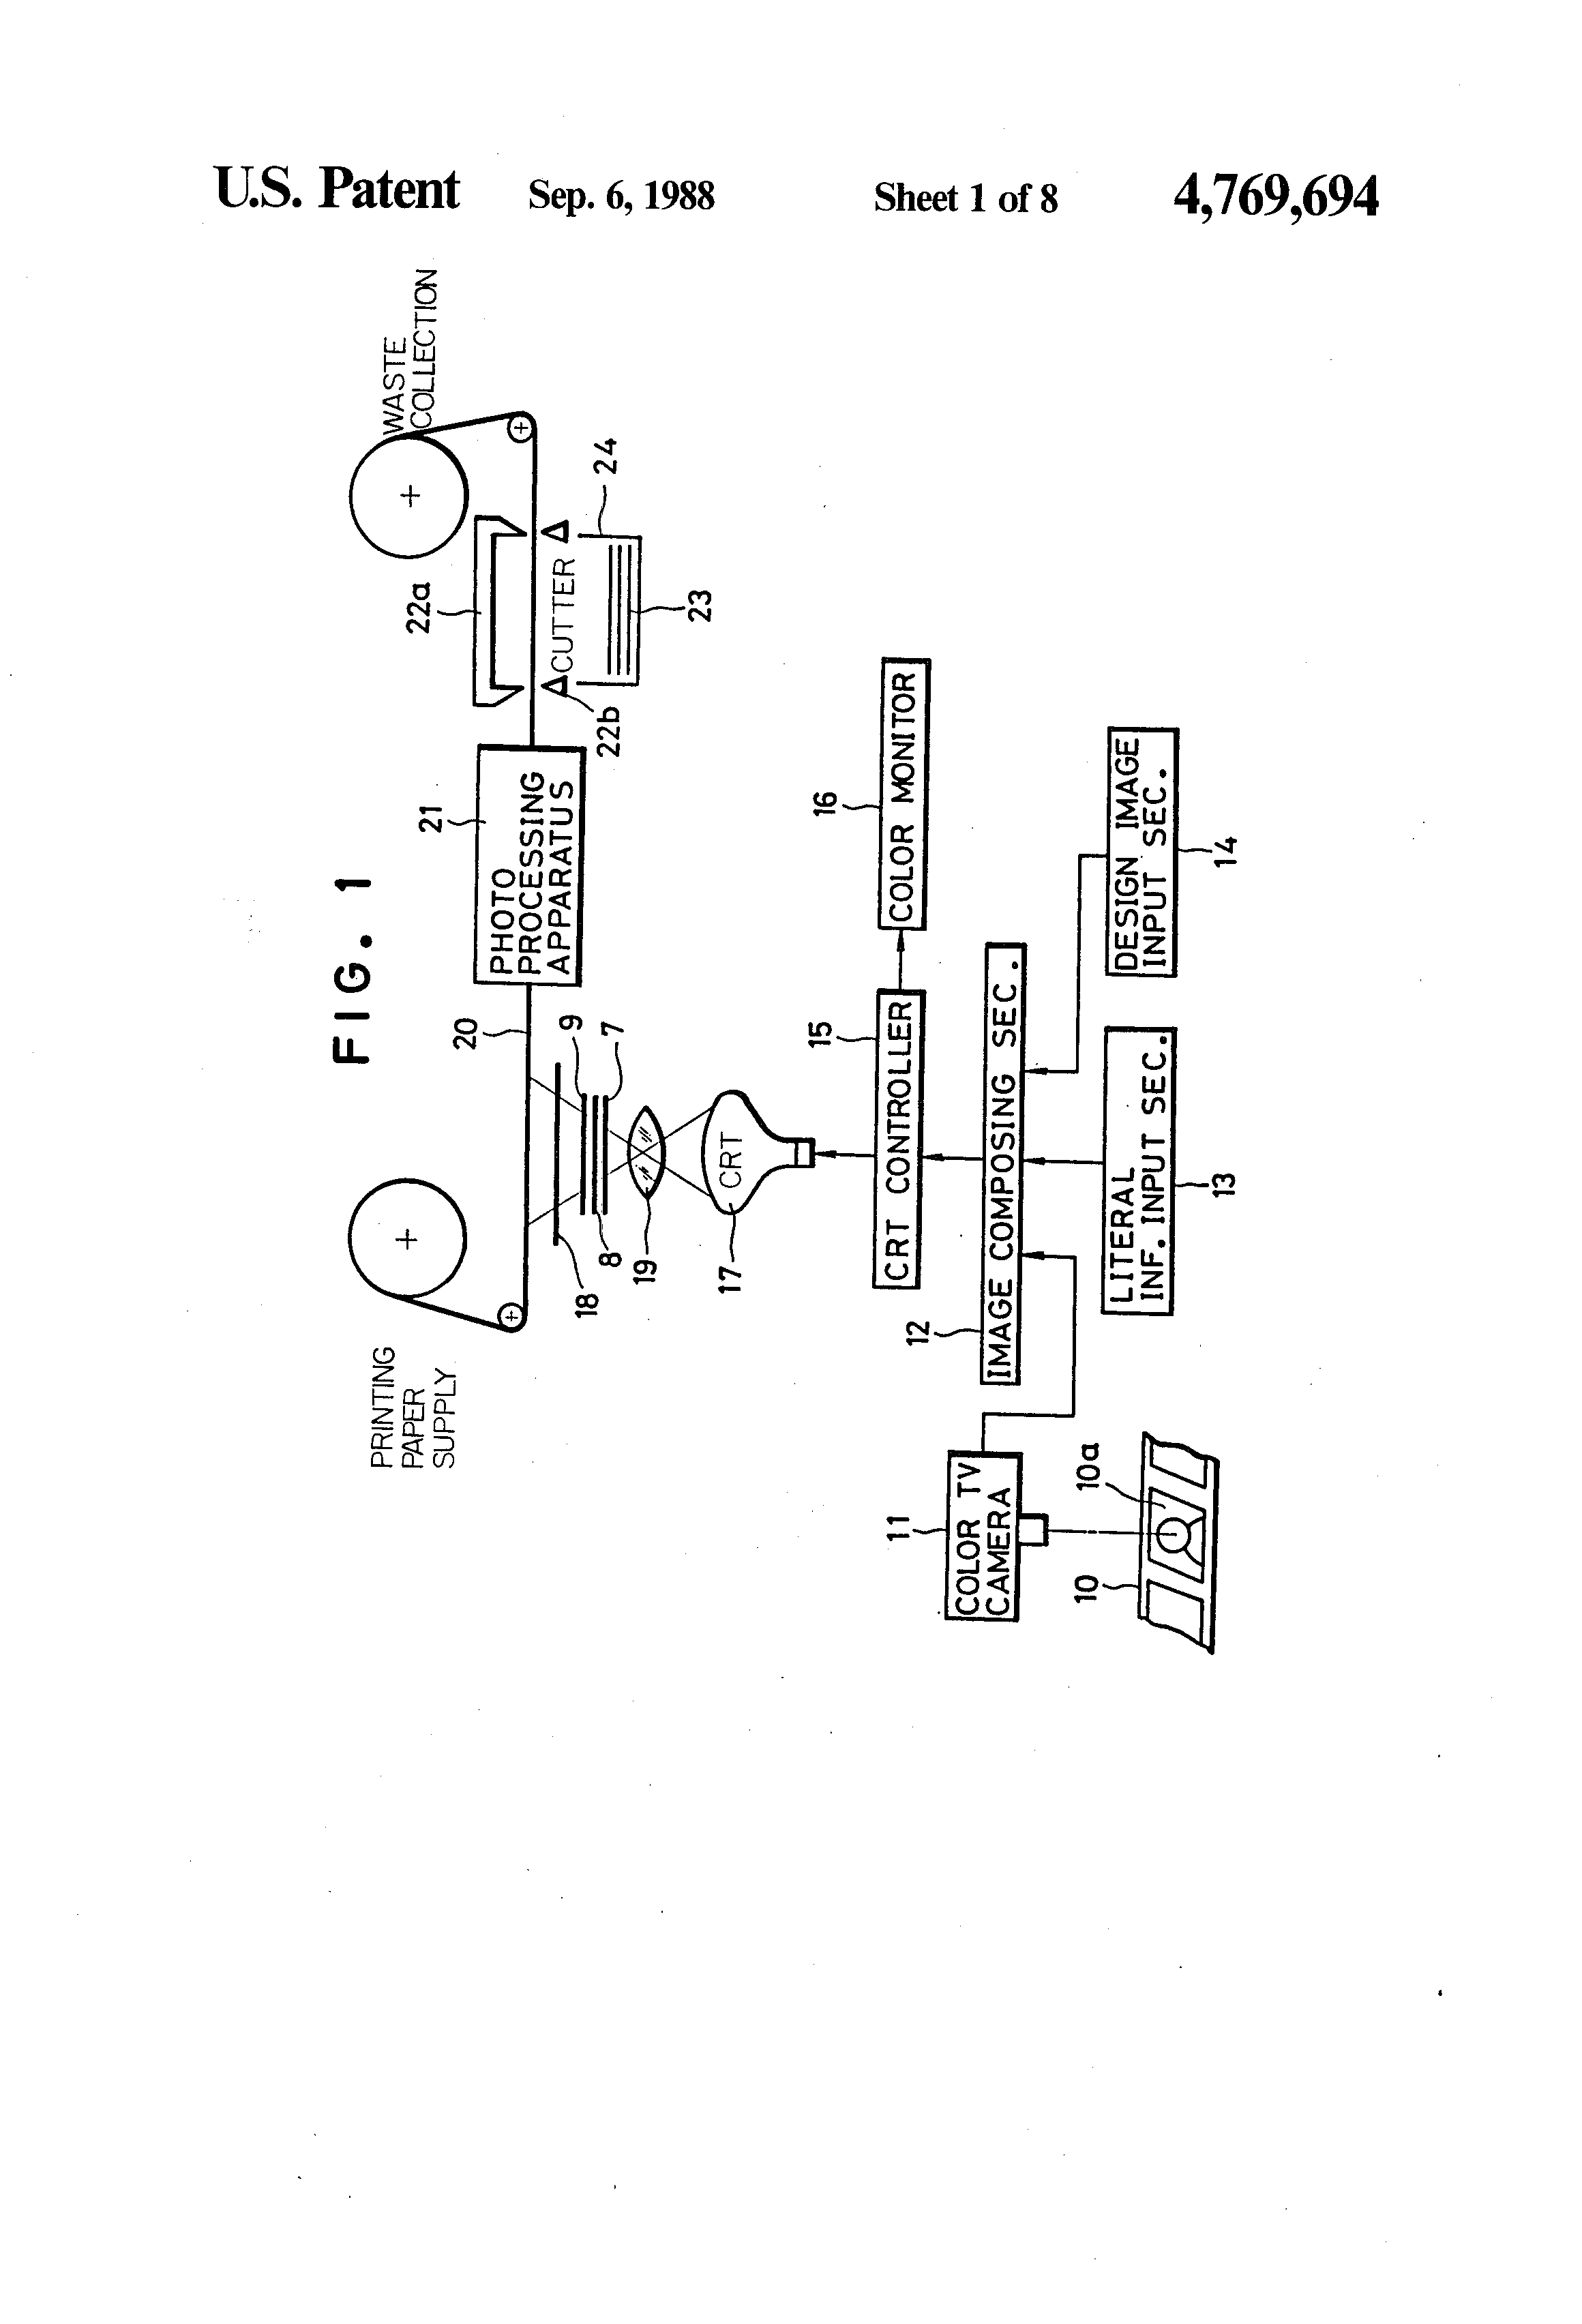 Patent Us4769694 Method Of Printing A Composite Image Human Crt Screen Schematic Drawing